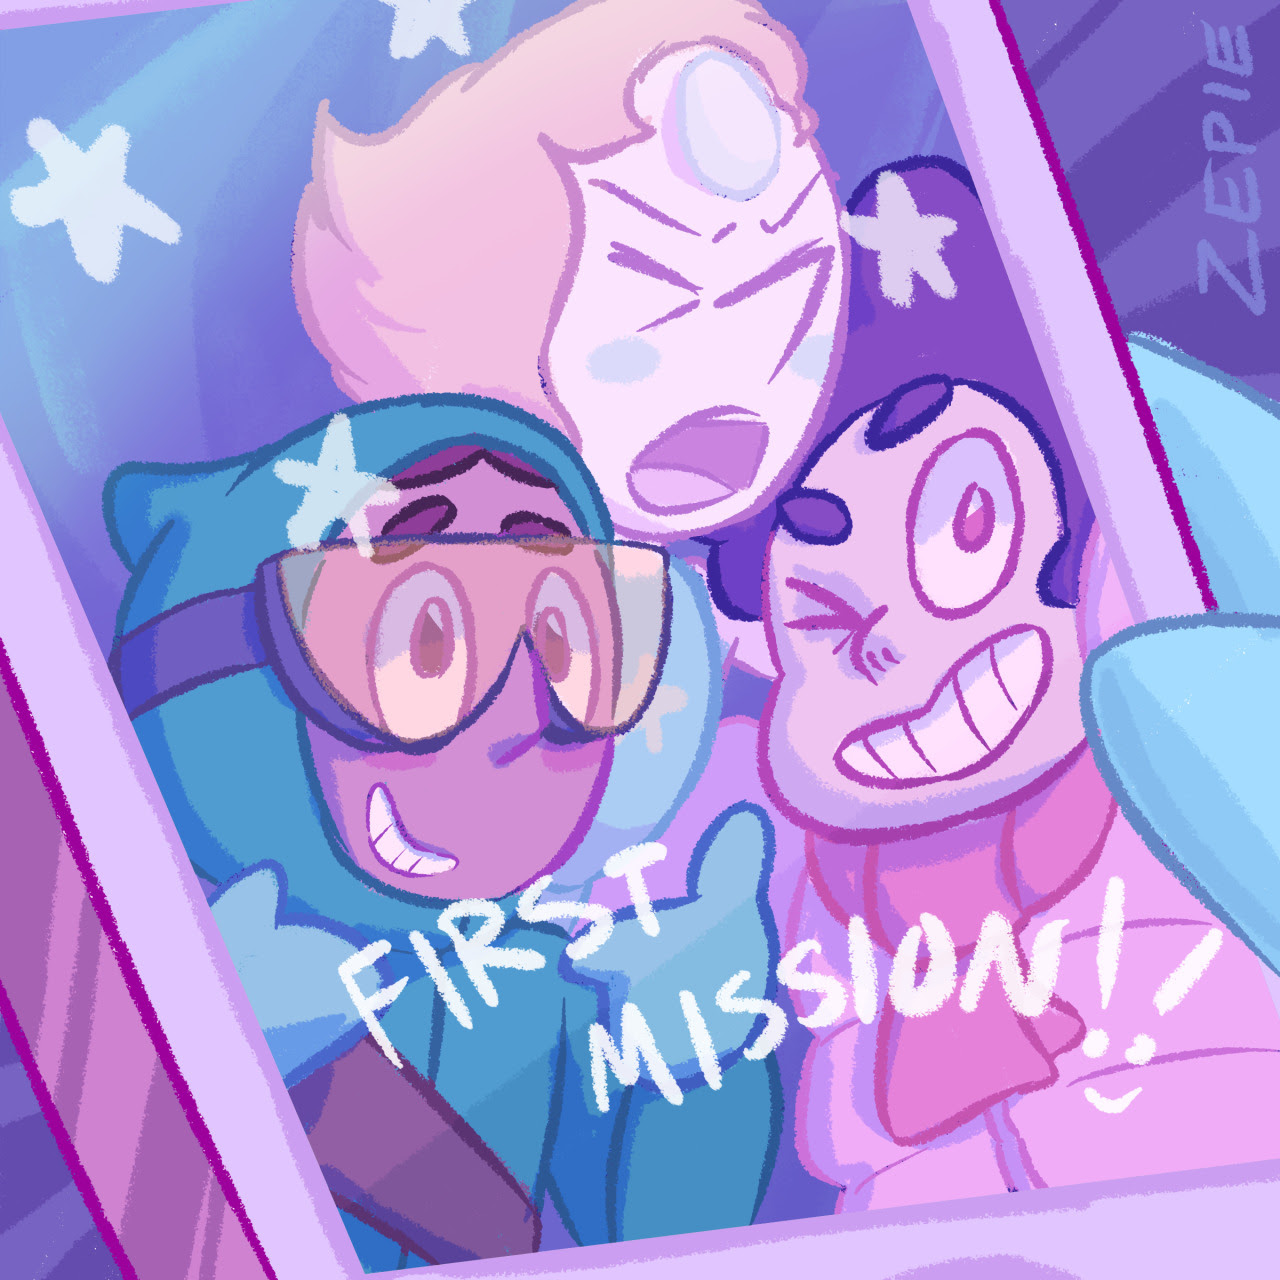 This episode was so cute! Also Pearl still looks beautiful even if shes not prepared for it